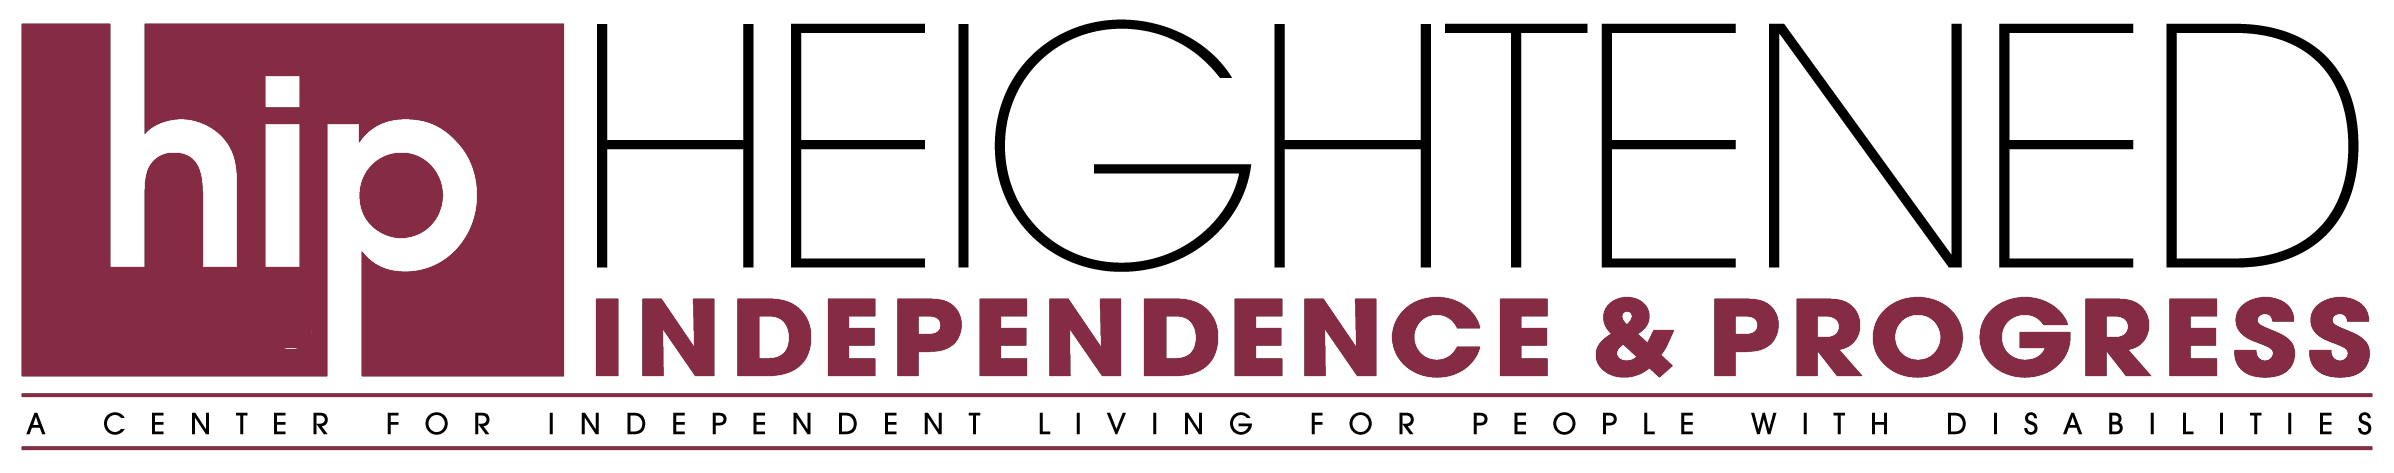 Heightened Independence & Progress image header